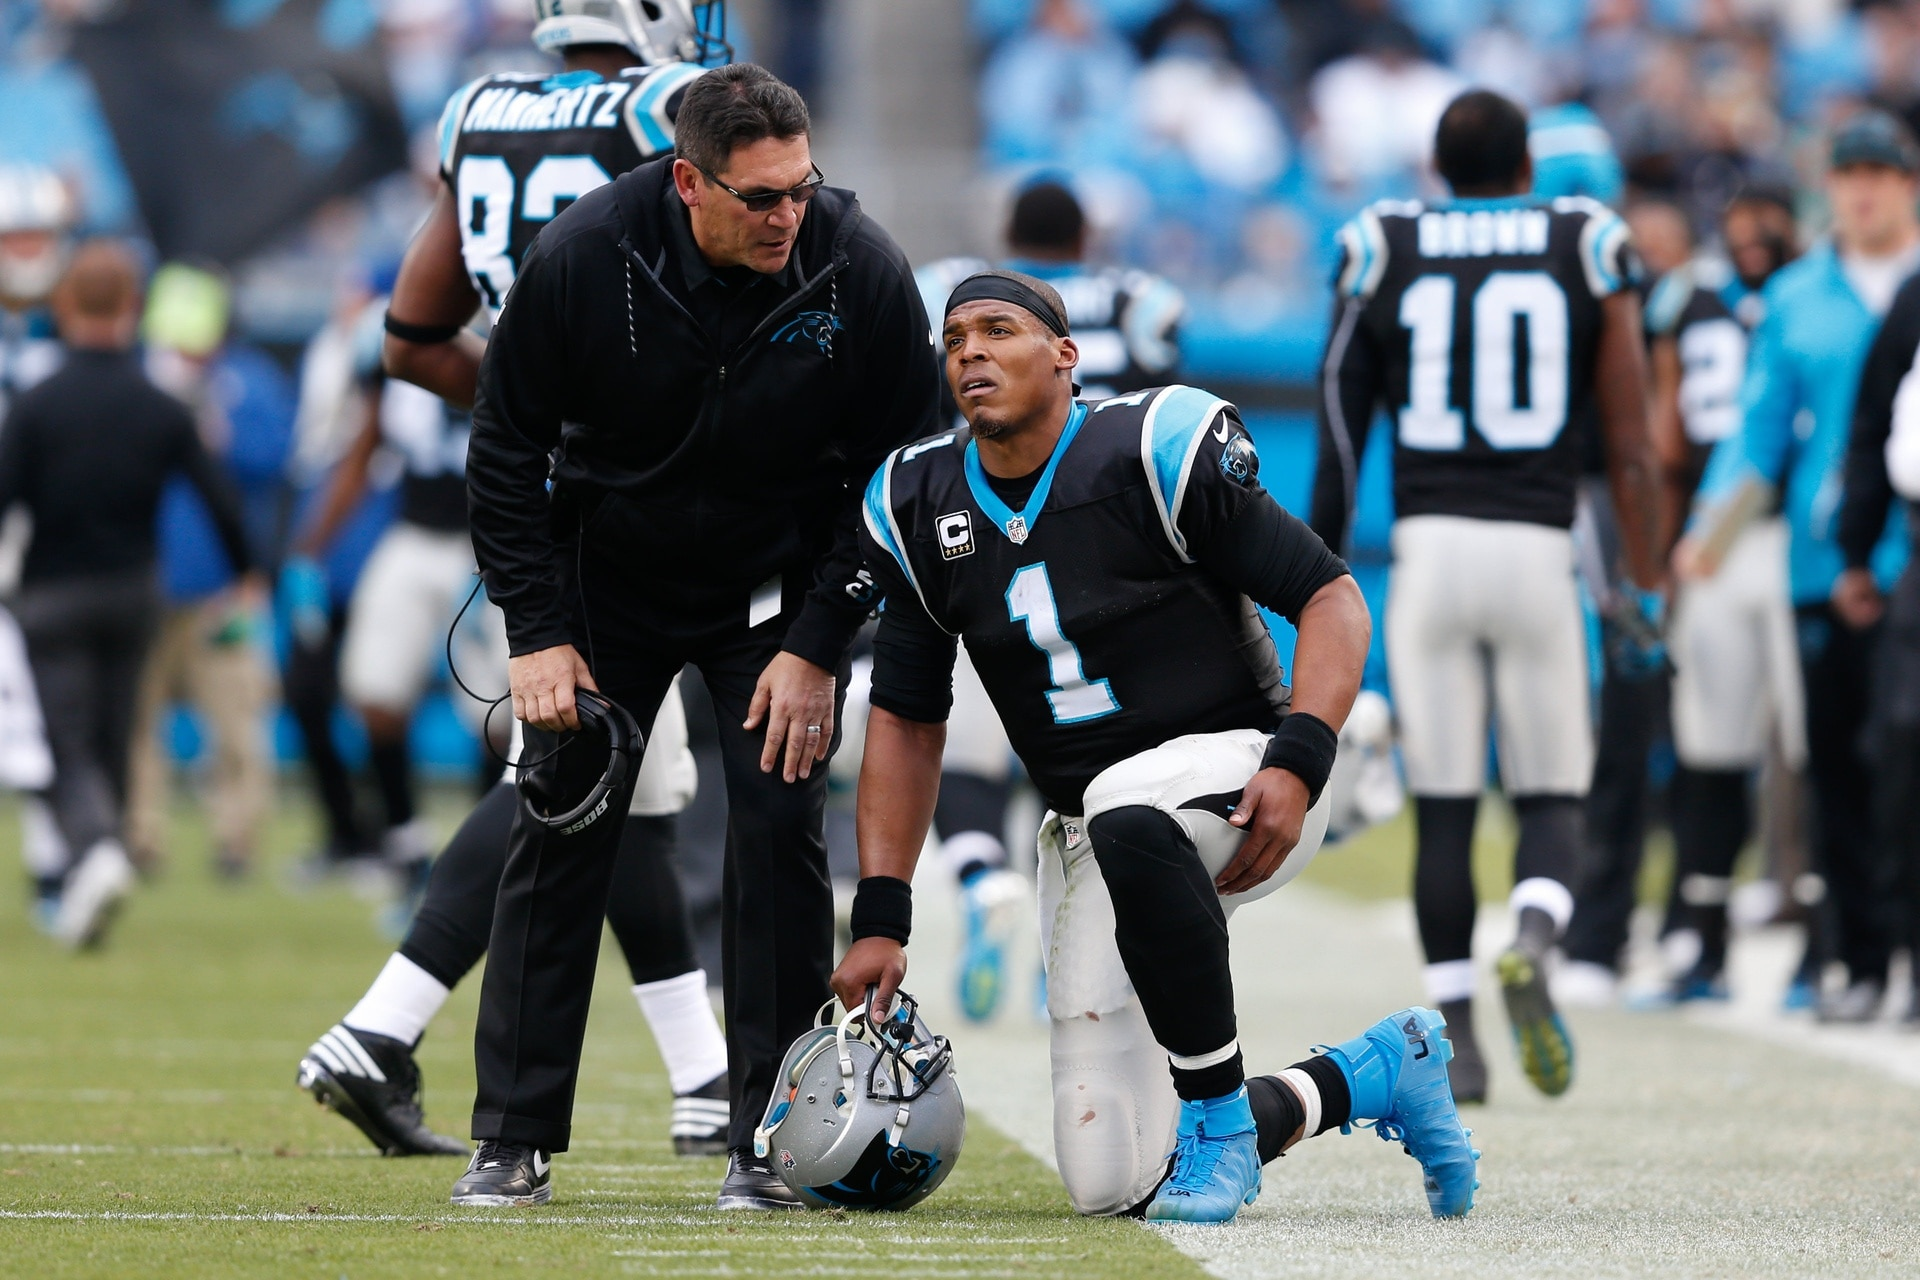 It's about time the Carolina Panthers get Cam Newton pass protection NFL Week 1